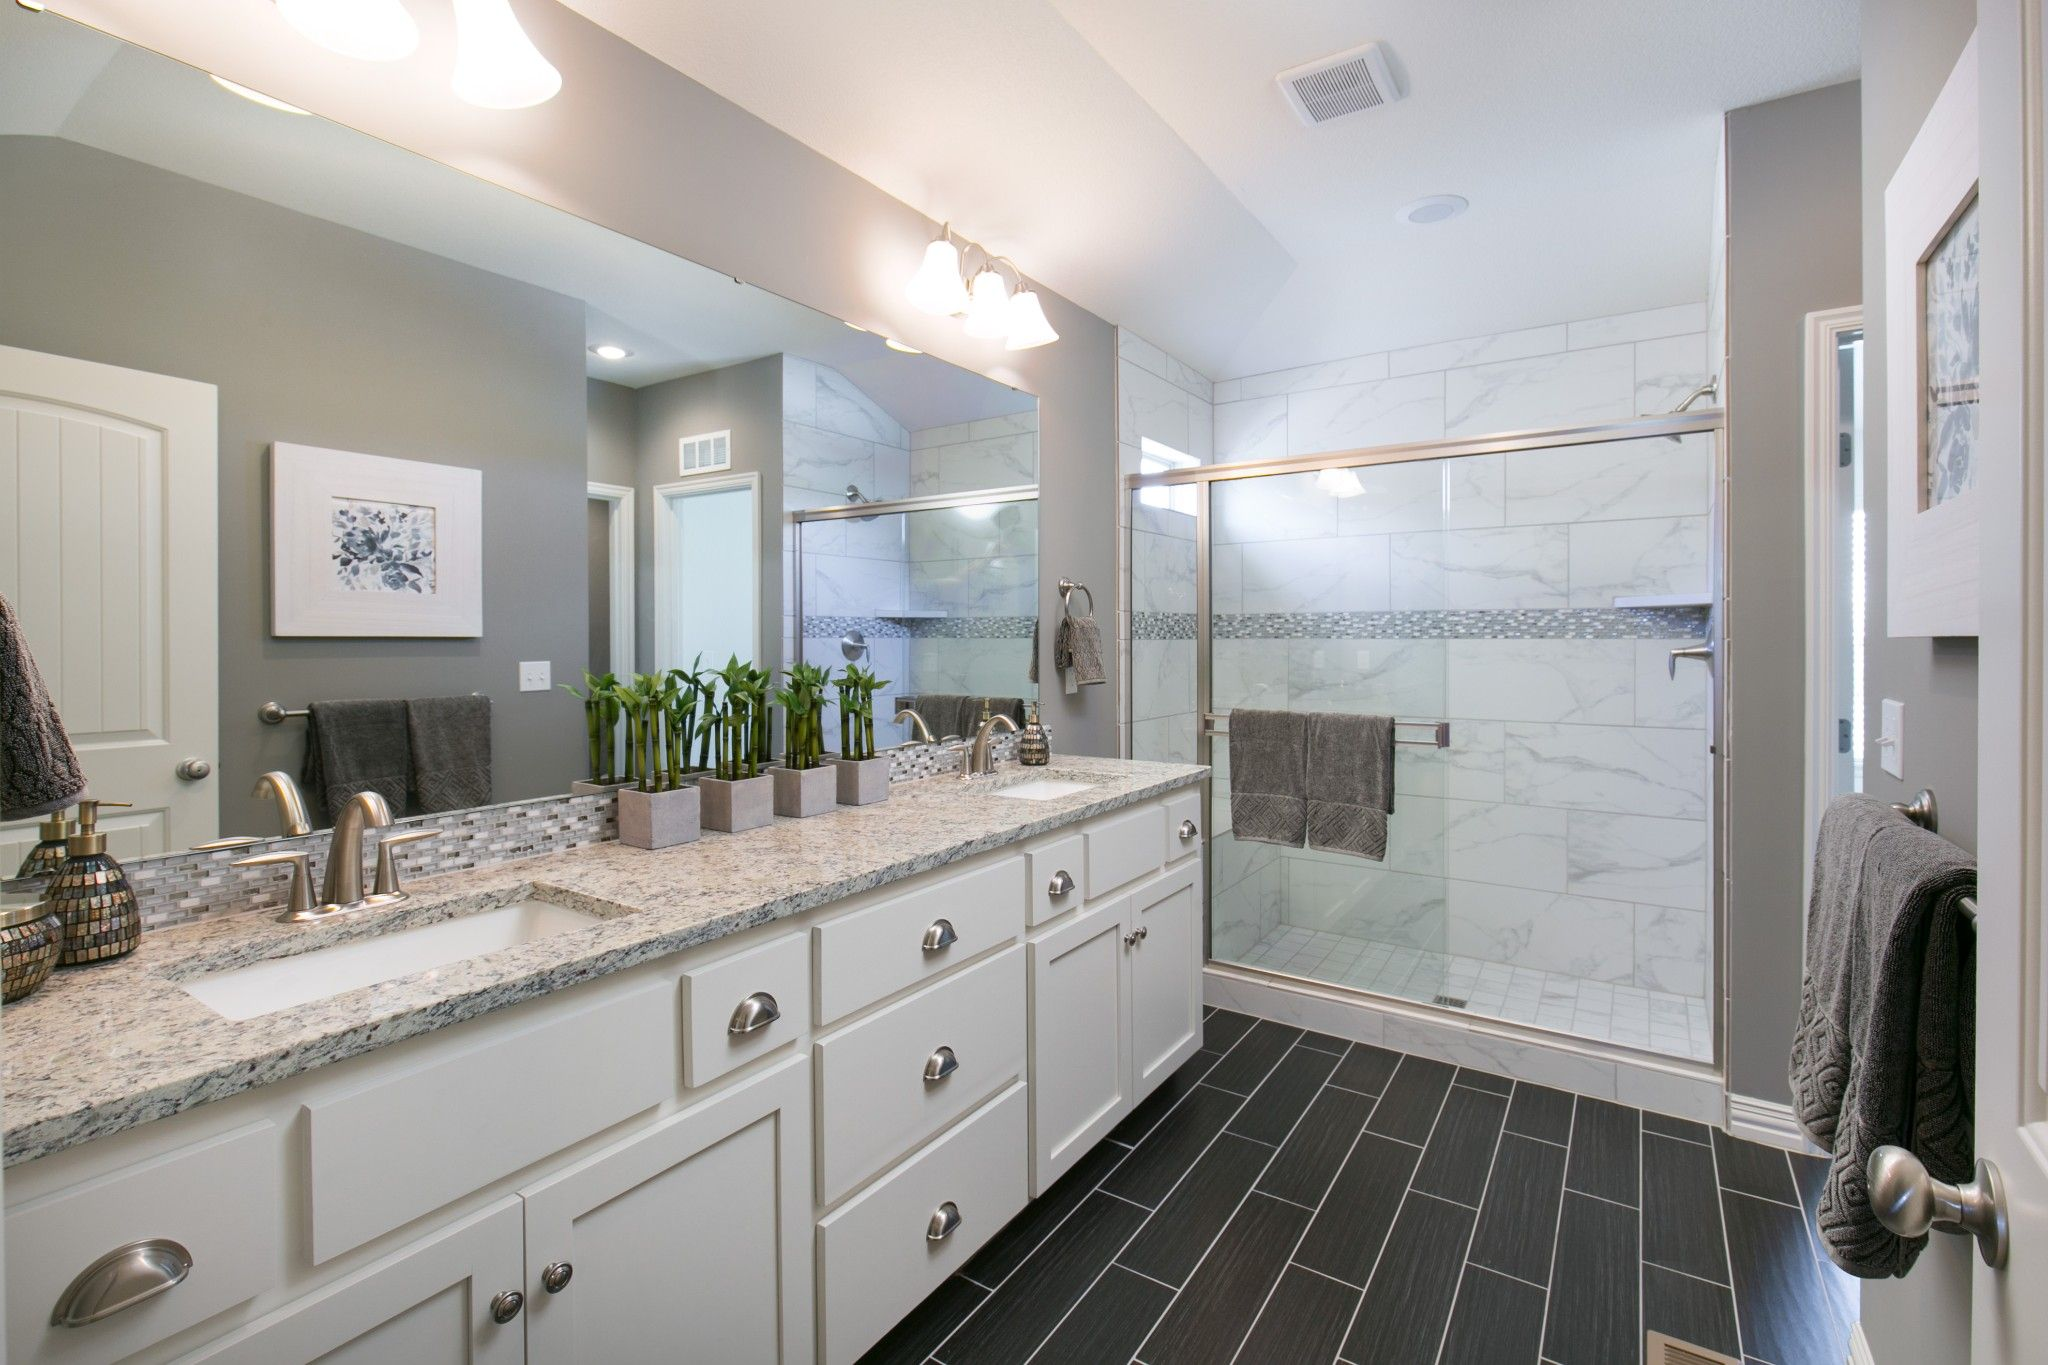 Bathroom featured in the Preston Ridge - IA By Summit Homes in Des Moines, IA